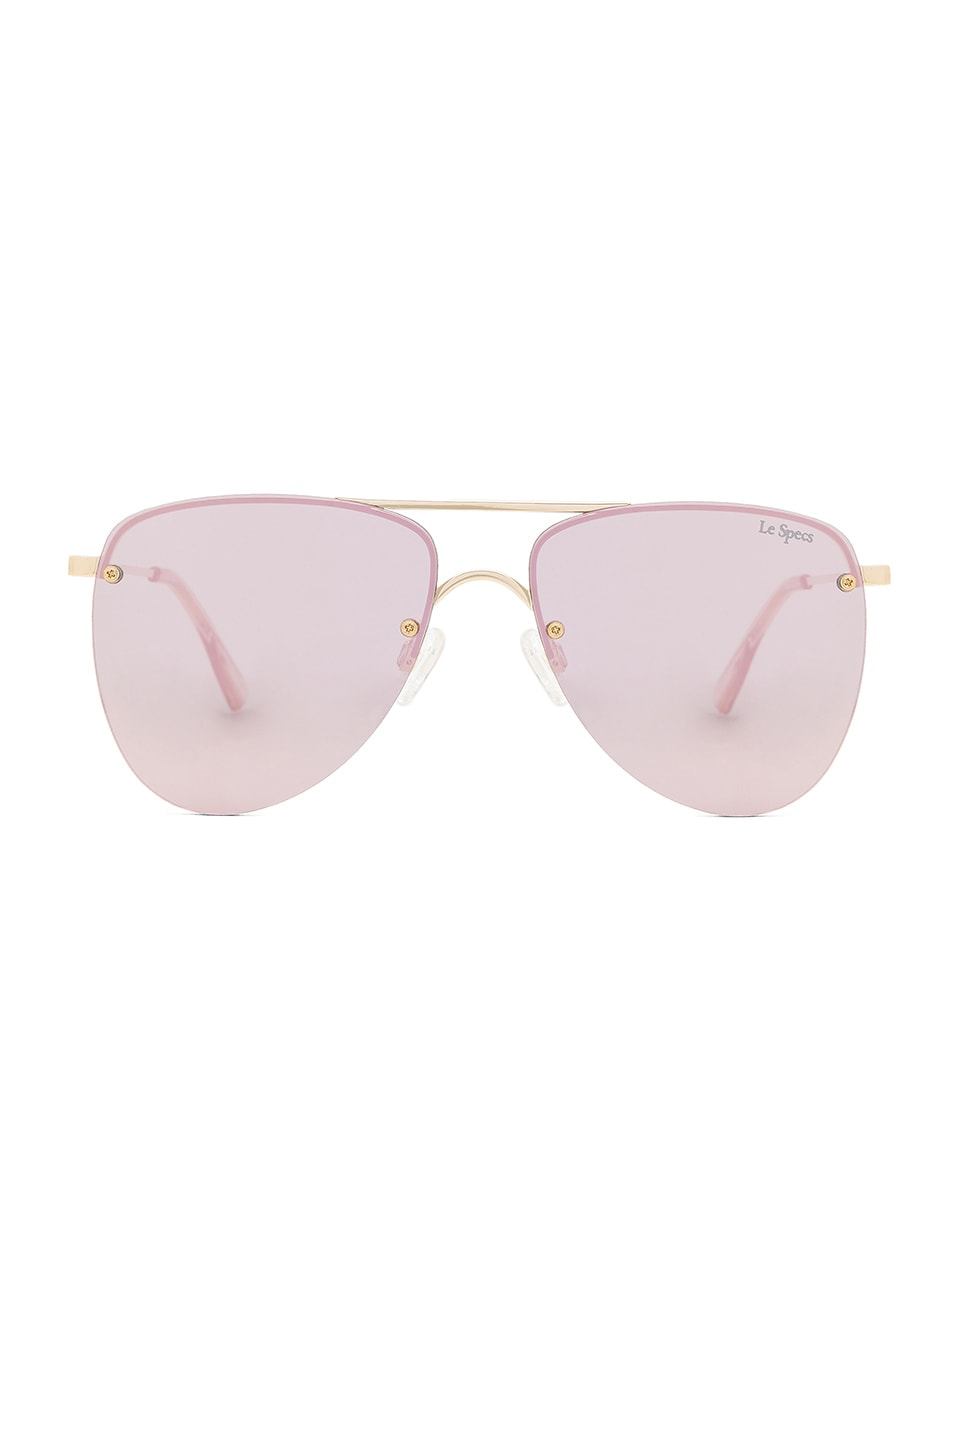 Le Specs The Prince Sunglasses in Gold & Blush